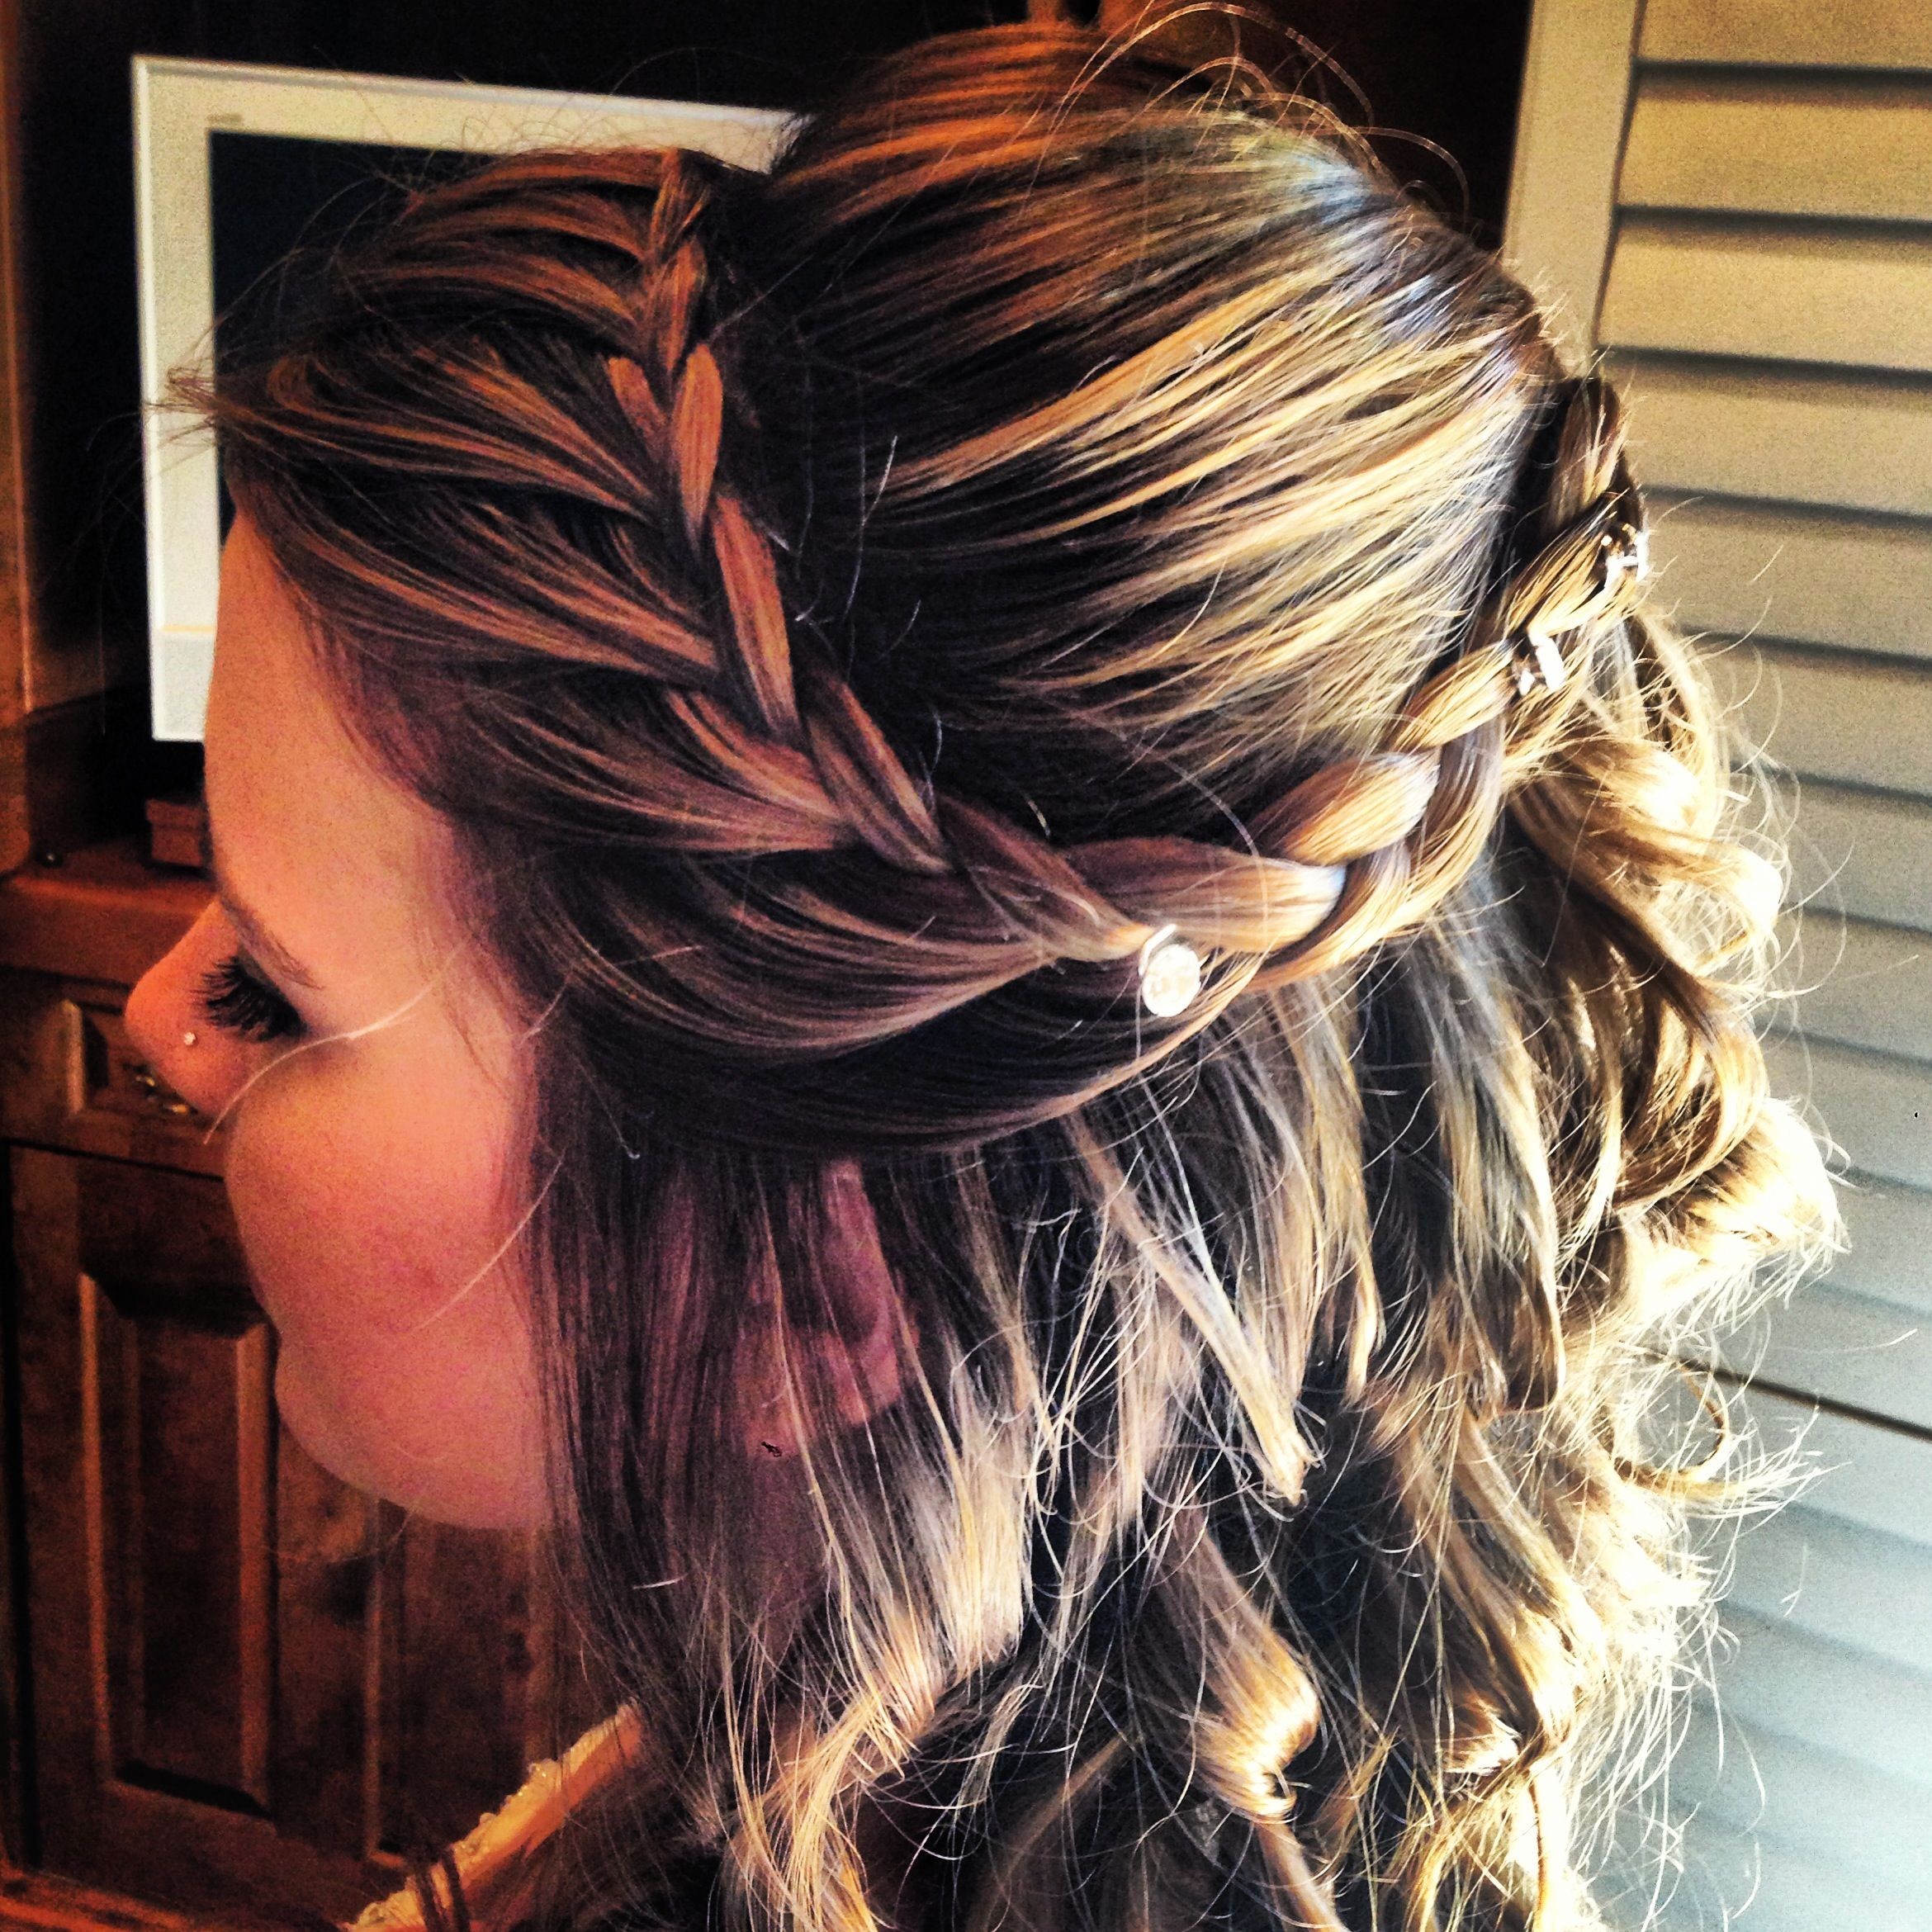 25 Best Ideas About Up Hairstyles On Pinterest: Best 25+ Half Up Hairstyles Ideas On Pinterest